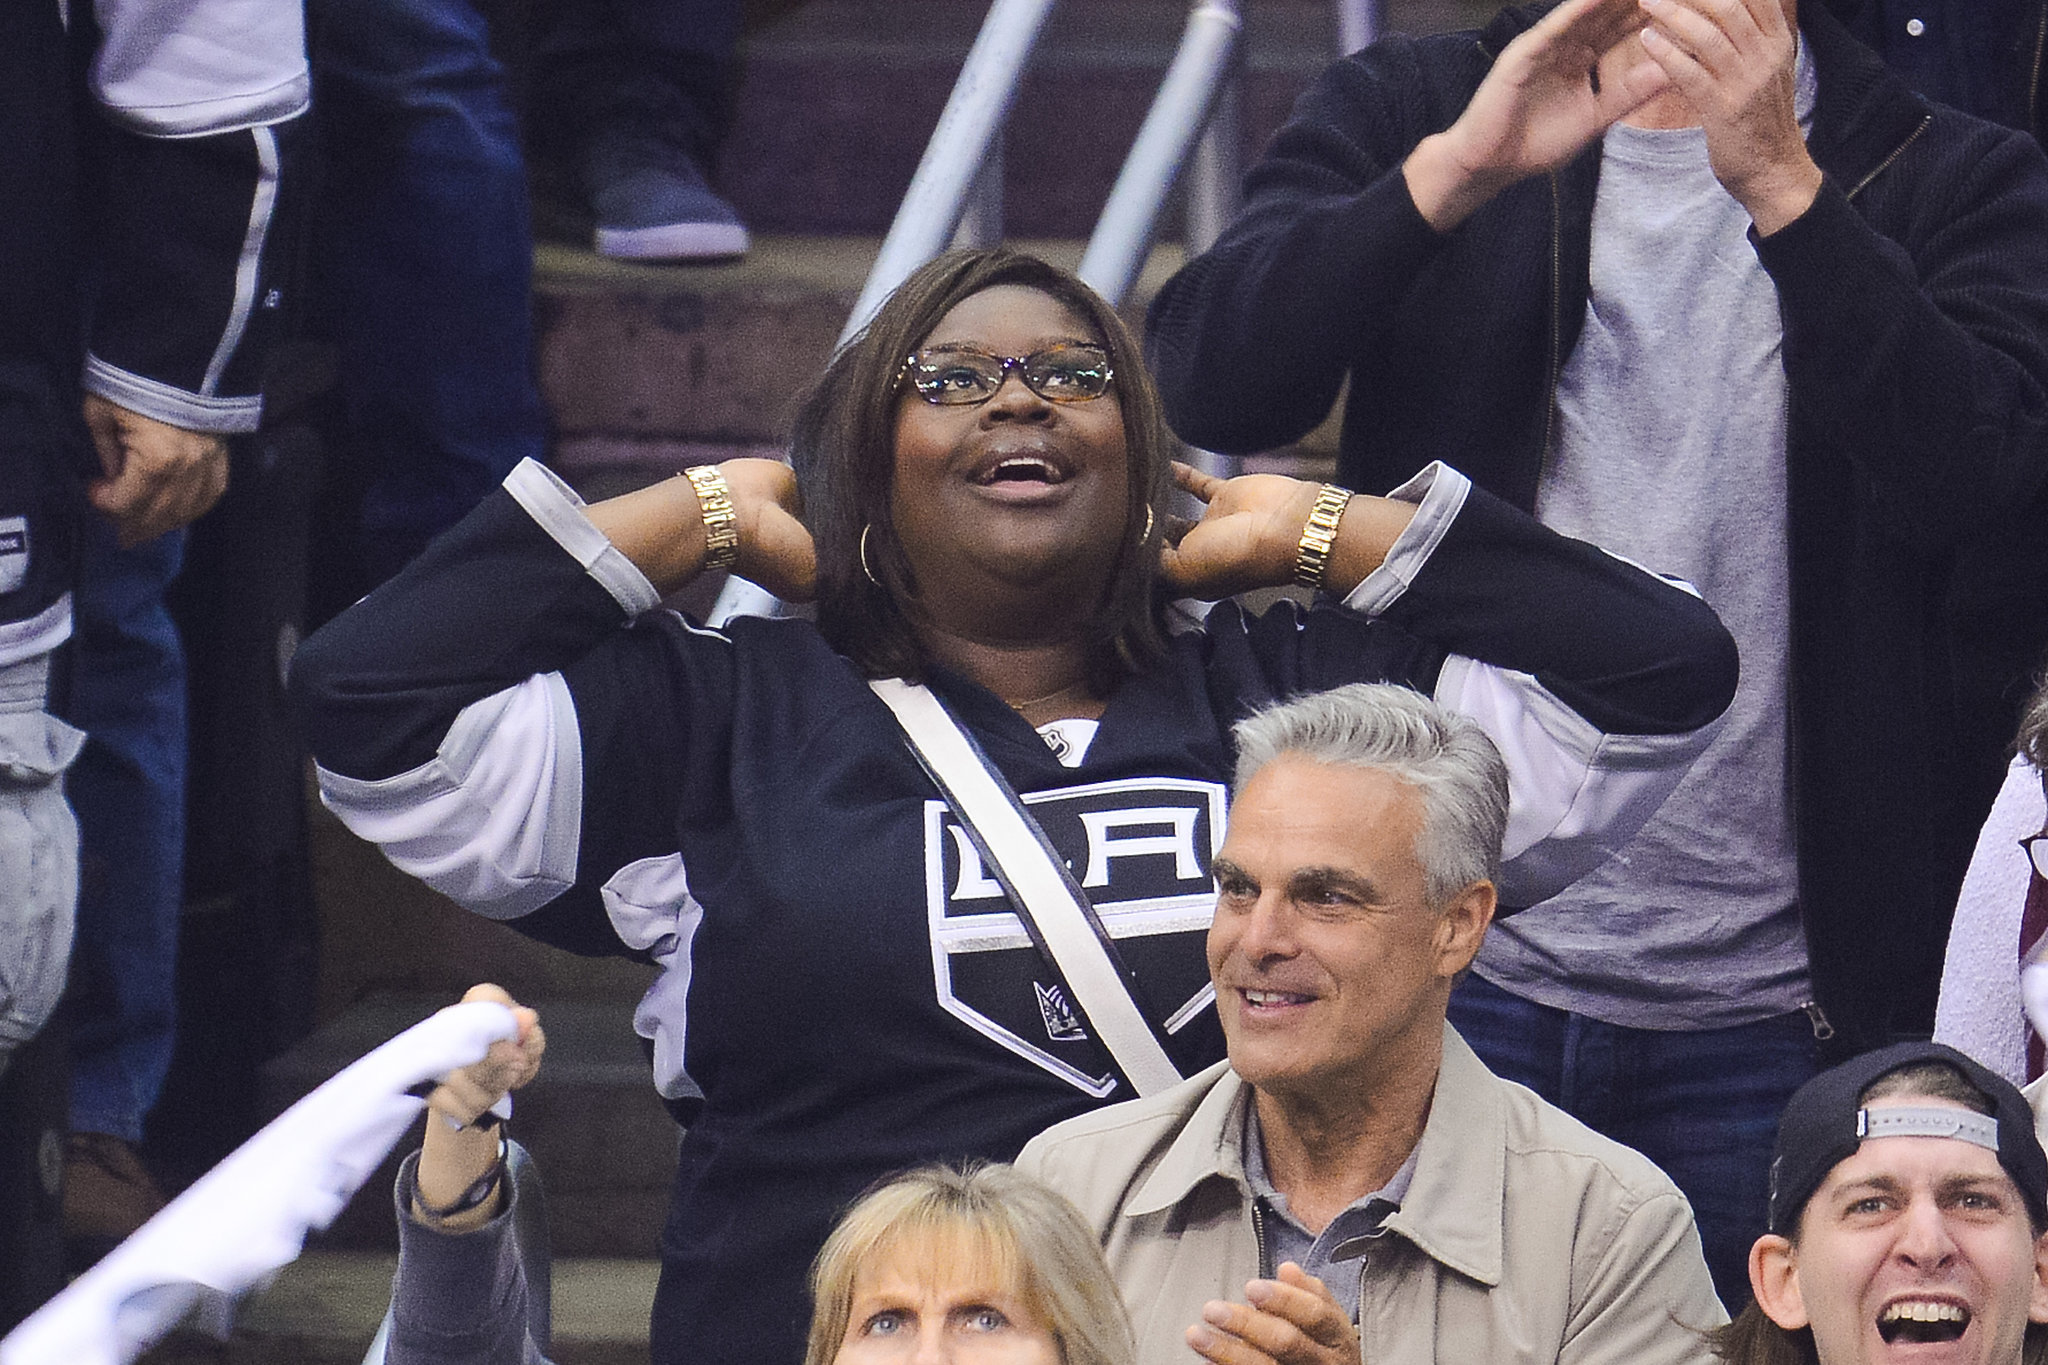 Retta couldn't contain her excitement during the game. Keep scrolling for more pictures!